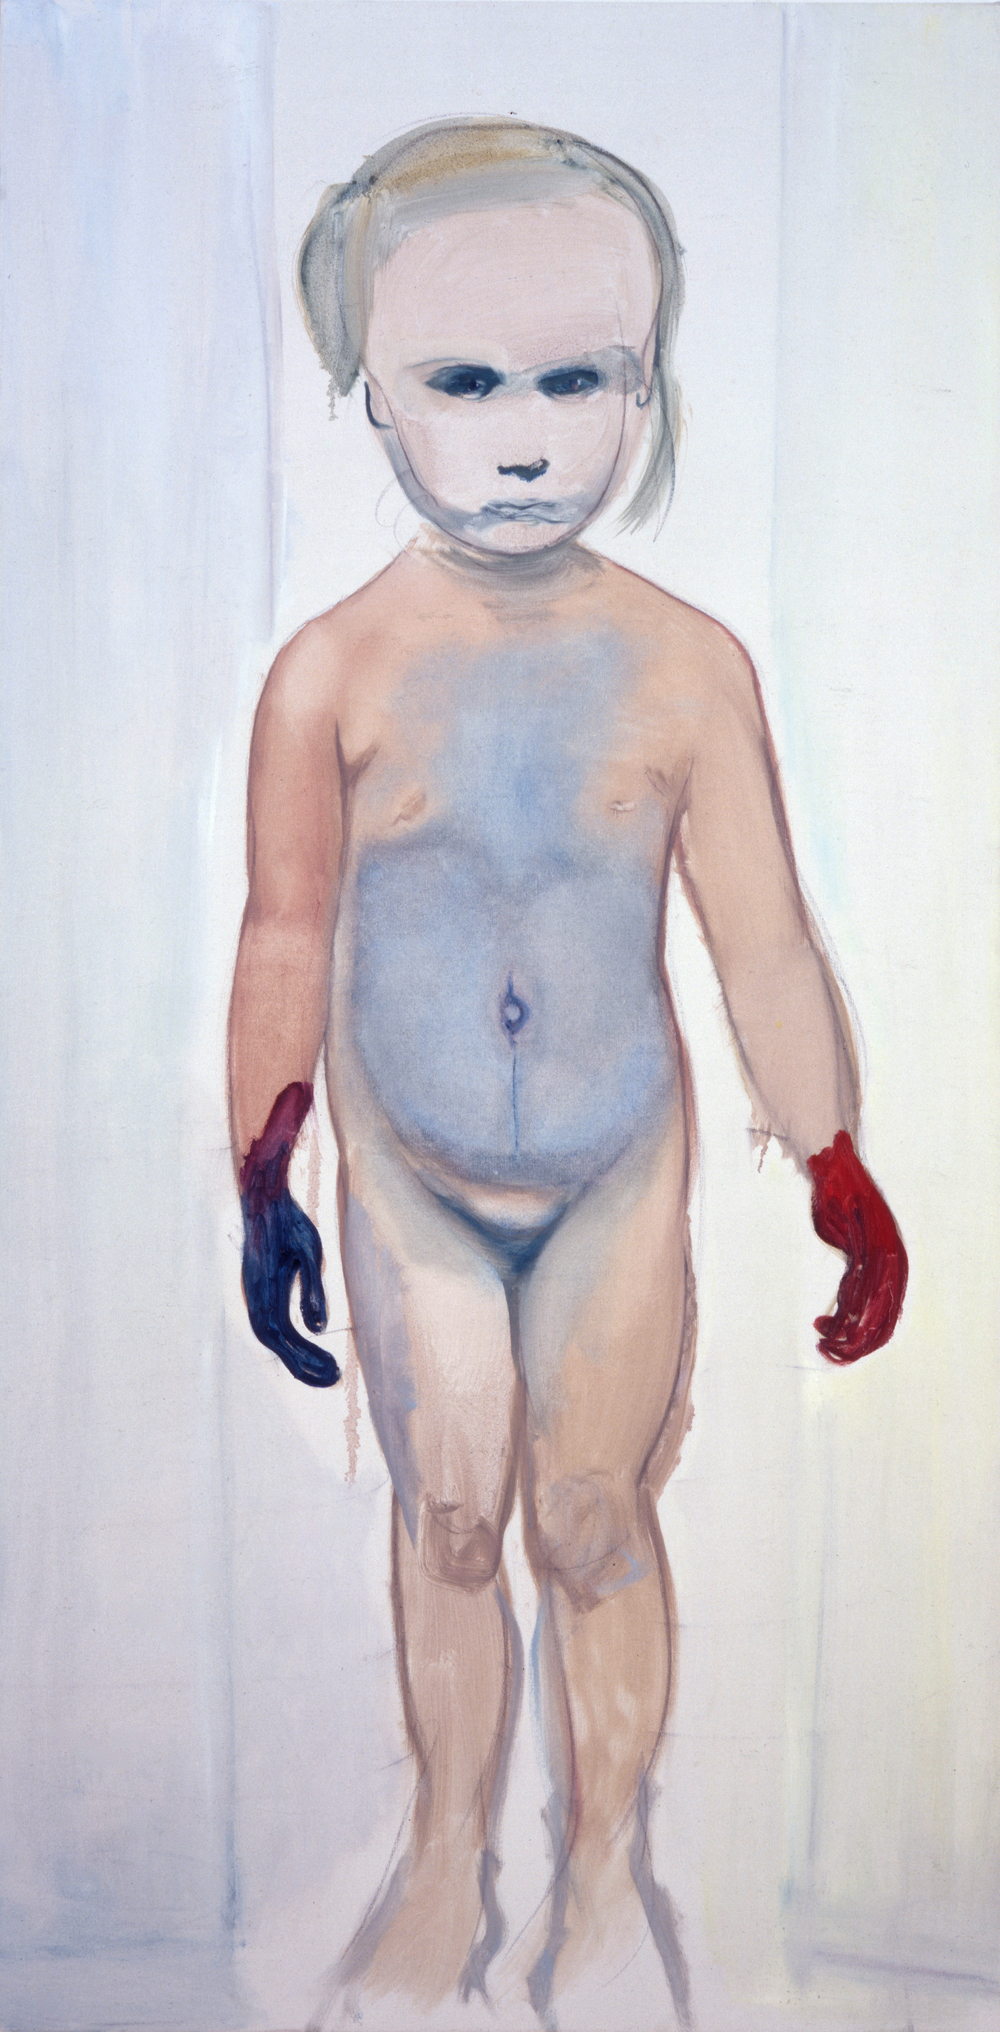 Marlene Dumas The Painter, 1994 Öl auf Leinwand, 200 x 100 cm  The Museum of Modern Art, New York, partielle und zugesagte Schenkung von Martin und Rebecca Eisenberg © Marlene Dumas  Foto: Peter Cox, © 2015, ProLitteris, Zürich